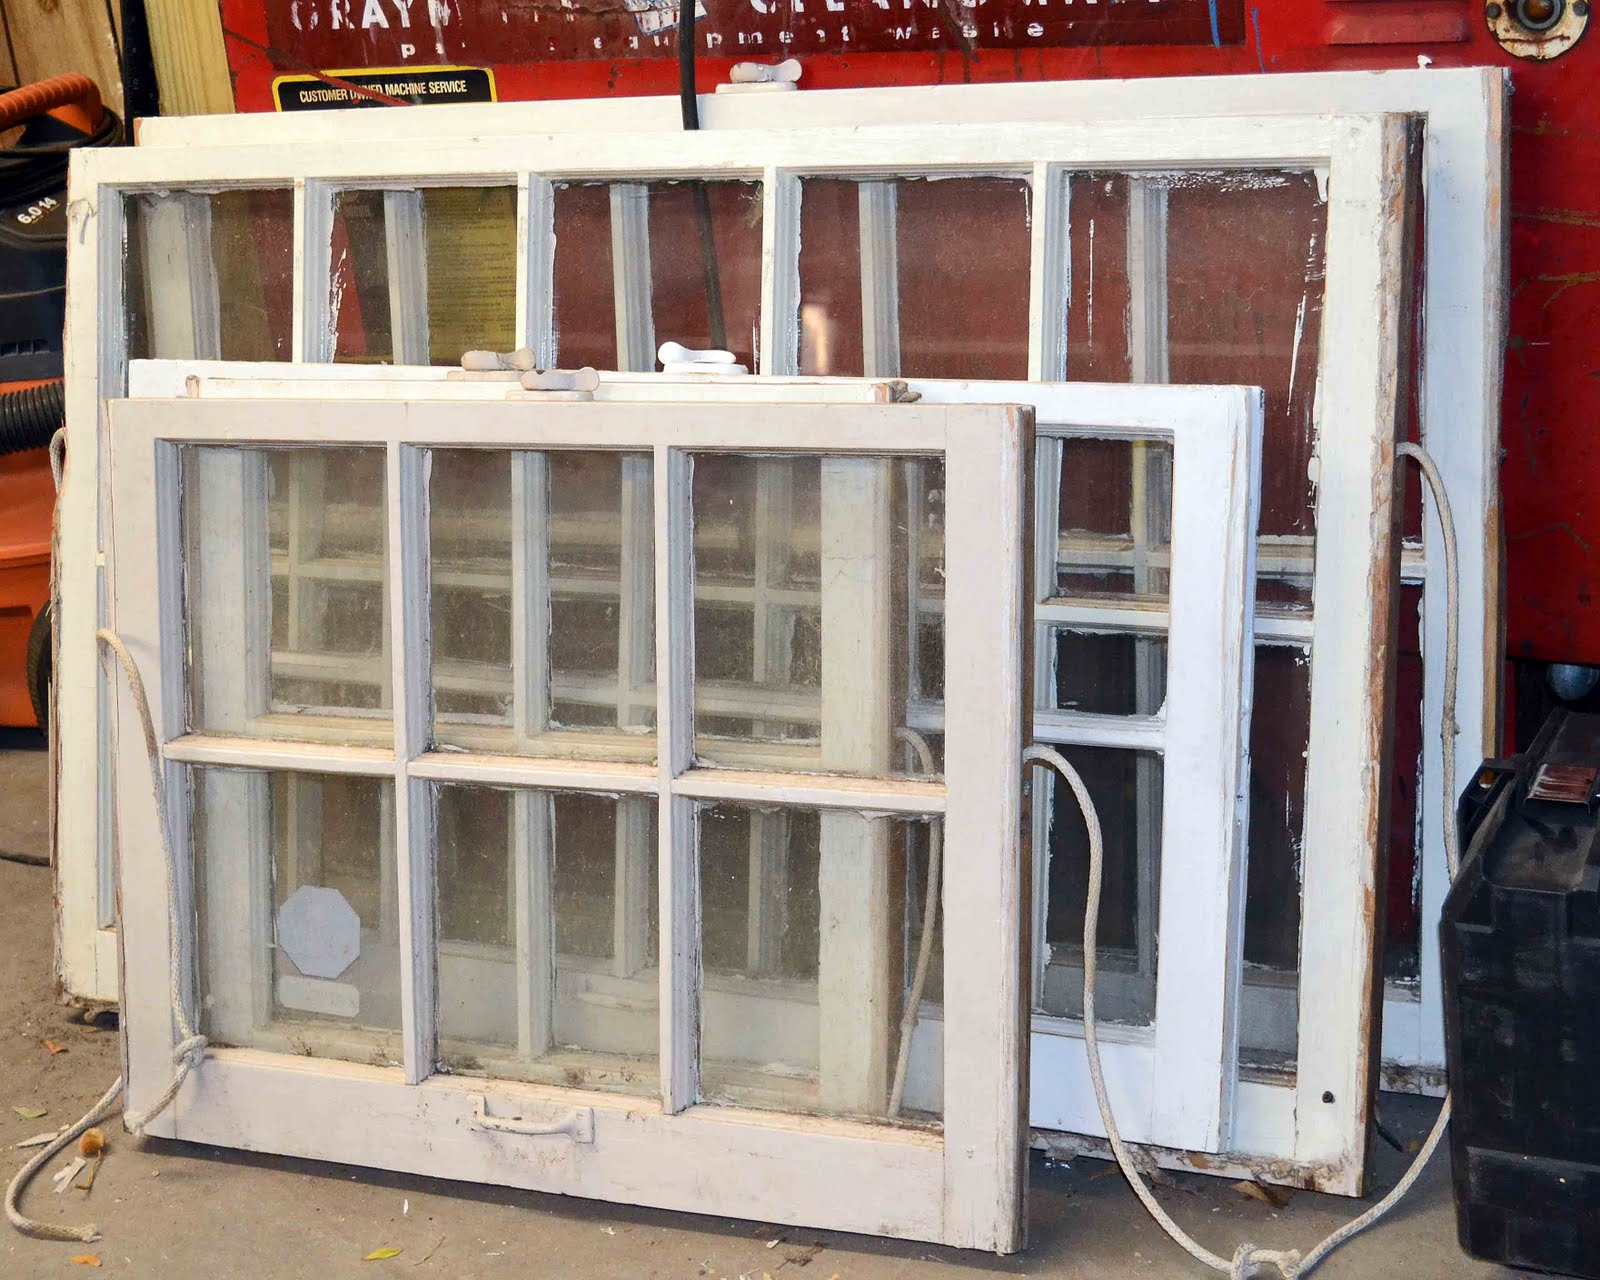 Decorating ideas using old windows ask home design - Old window ideas decorating ...